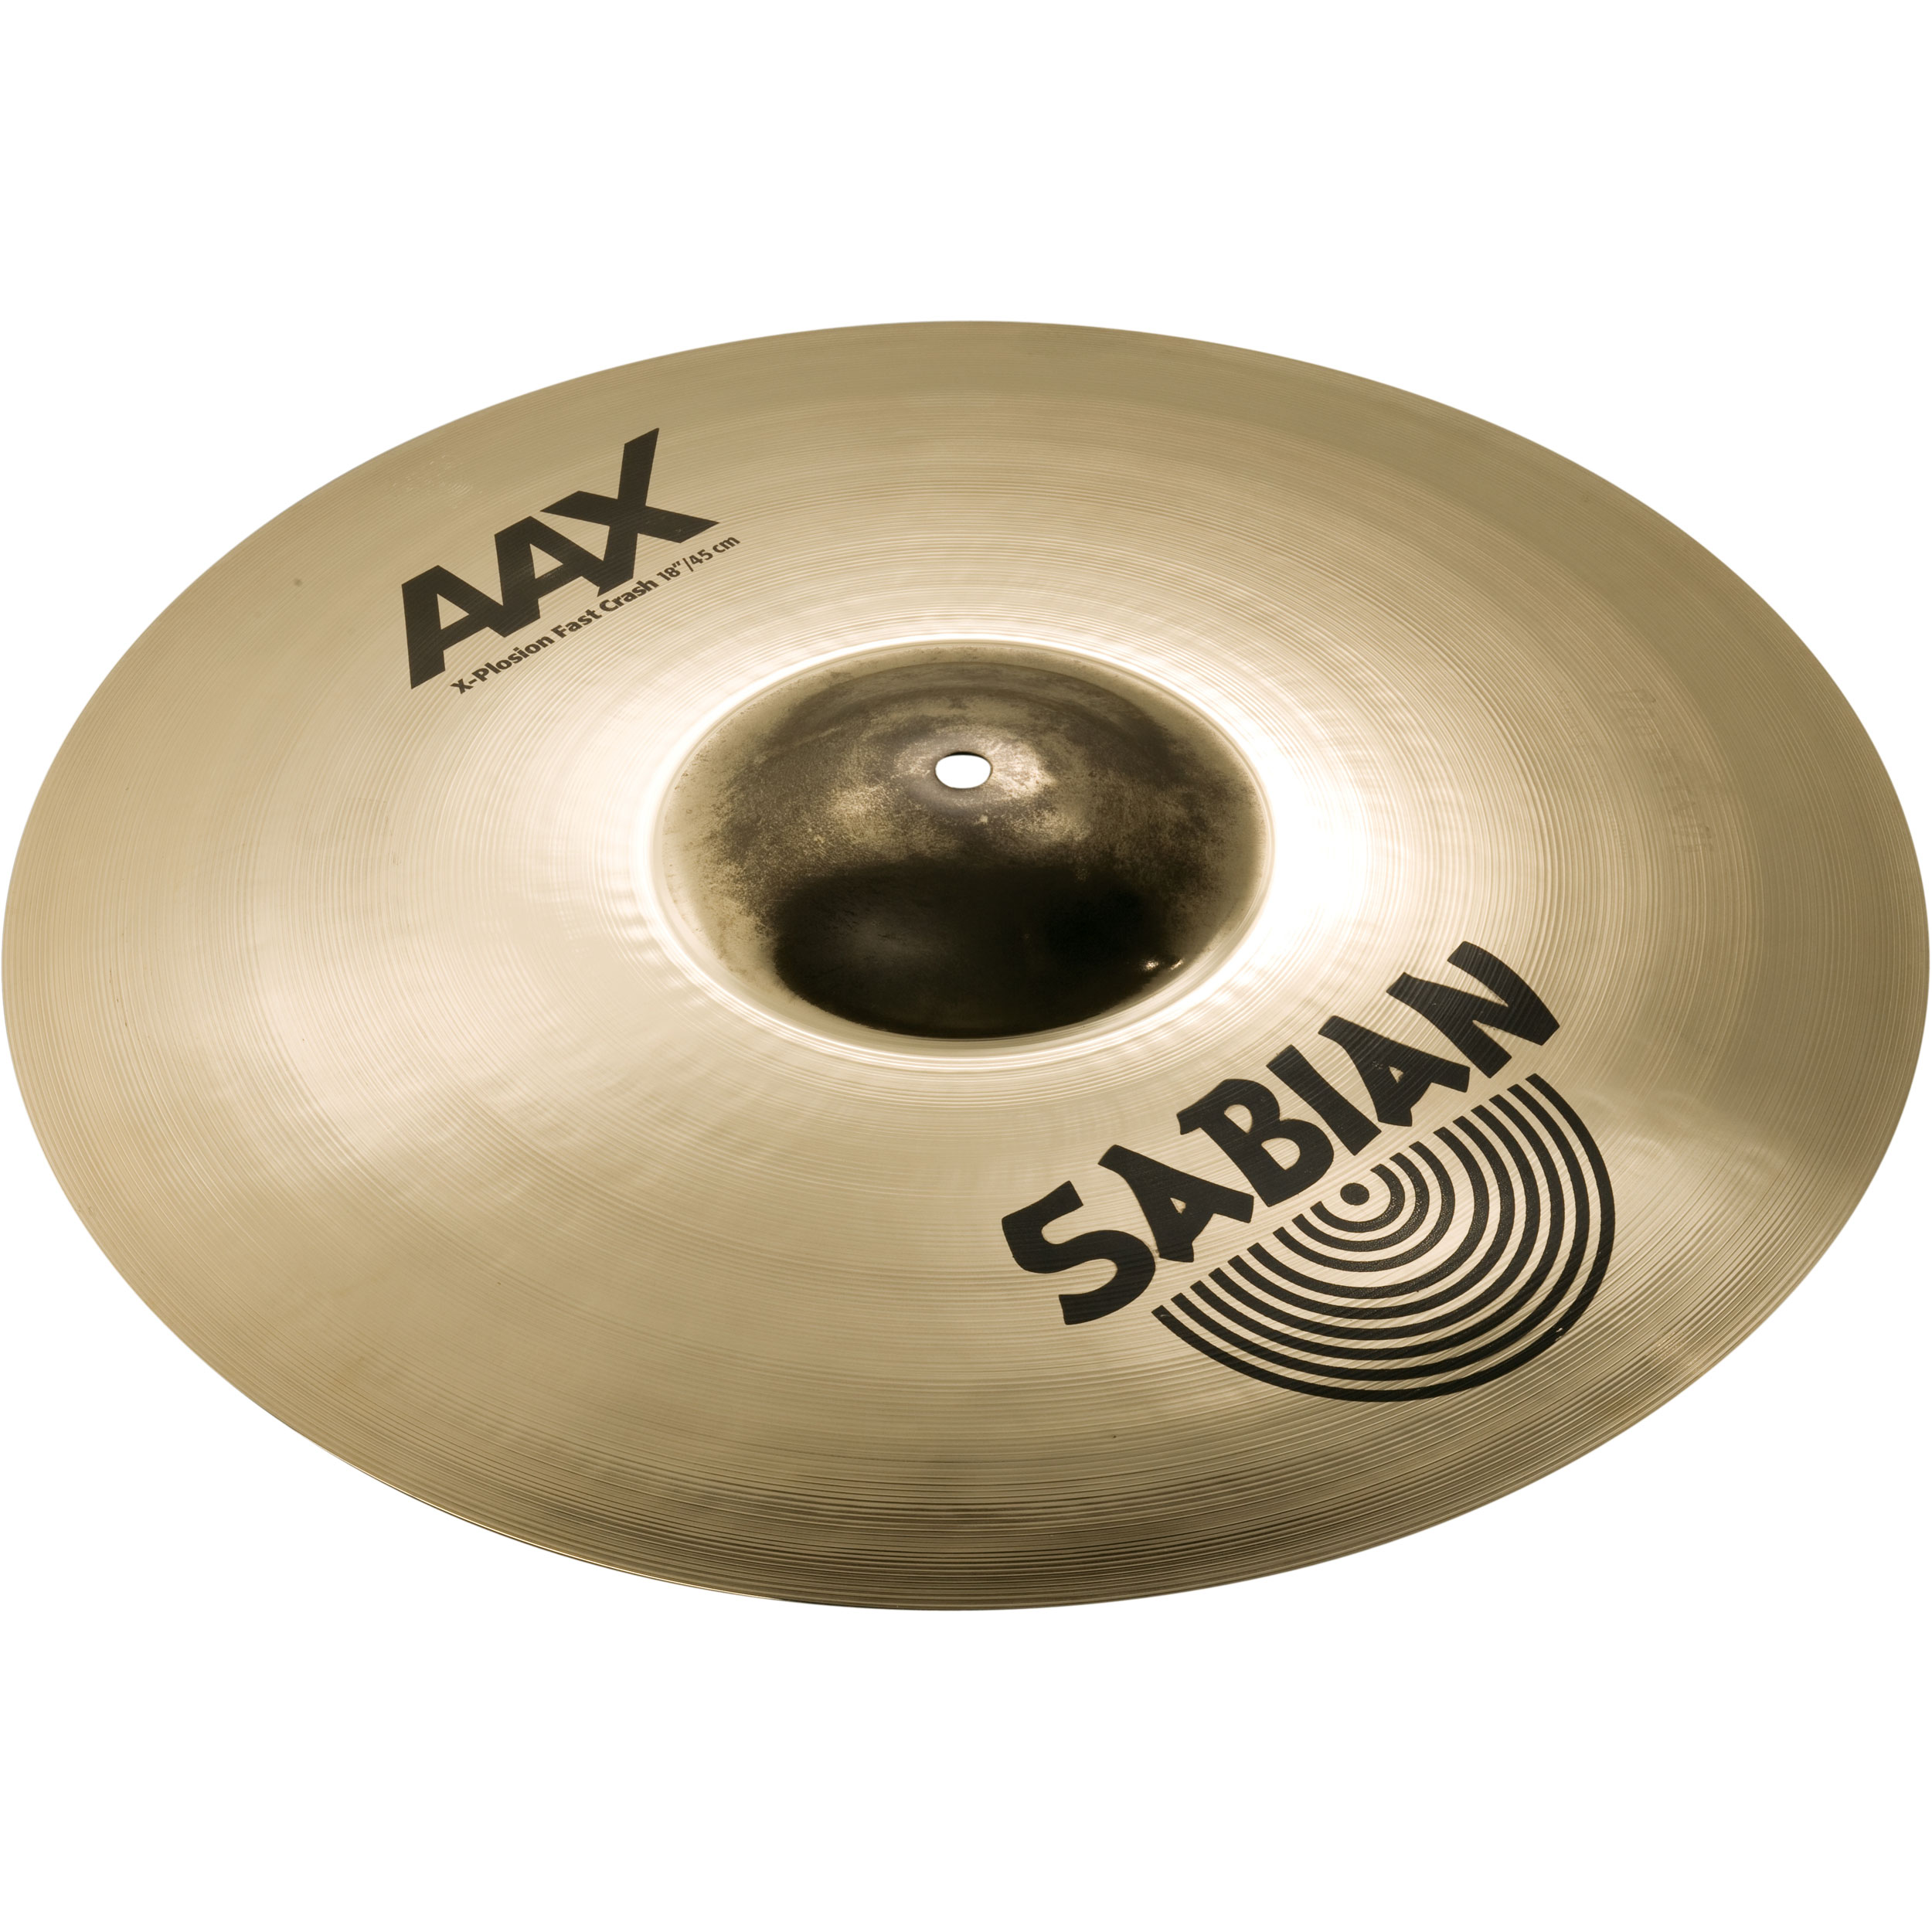 "Sabian 18"" AAX X-Plosion Fast Crash Cymbal with Brilliant Finish"